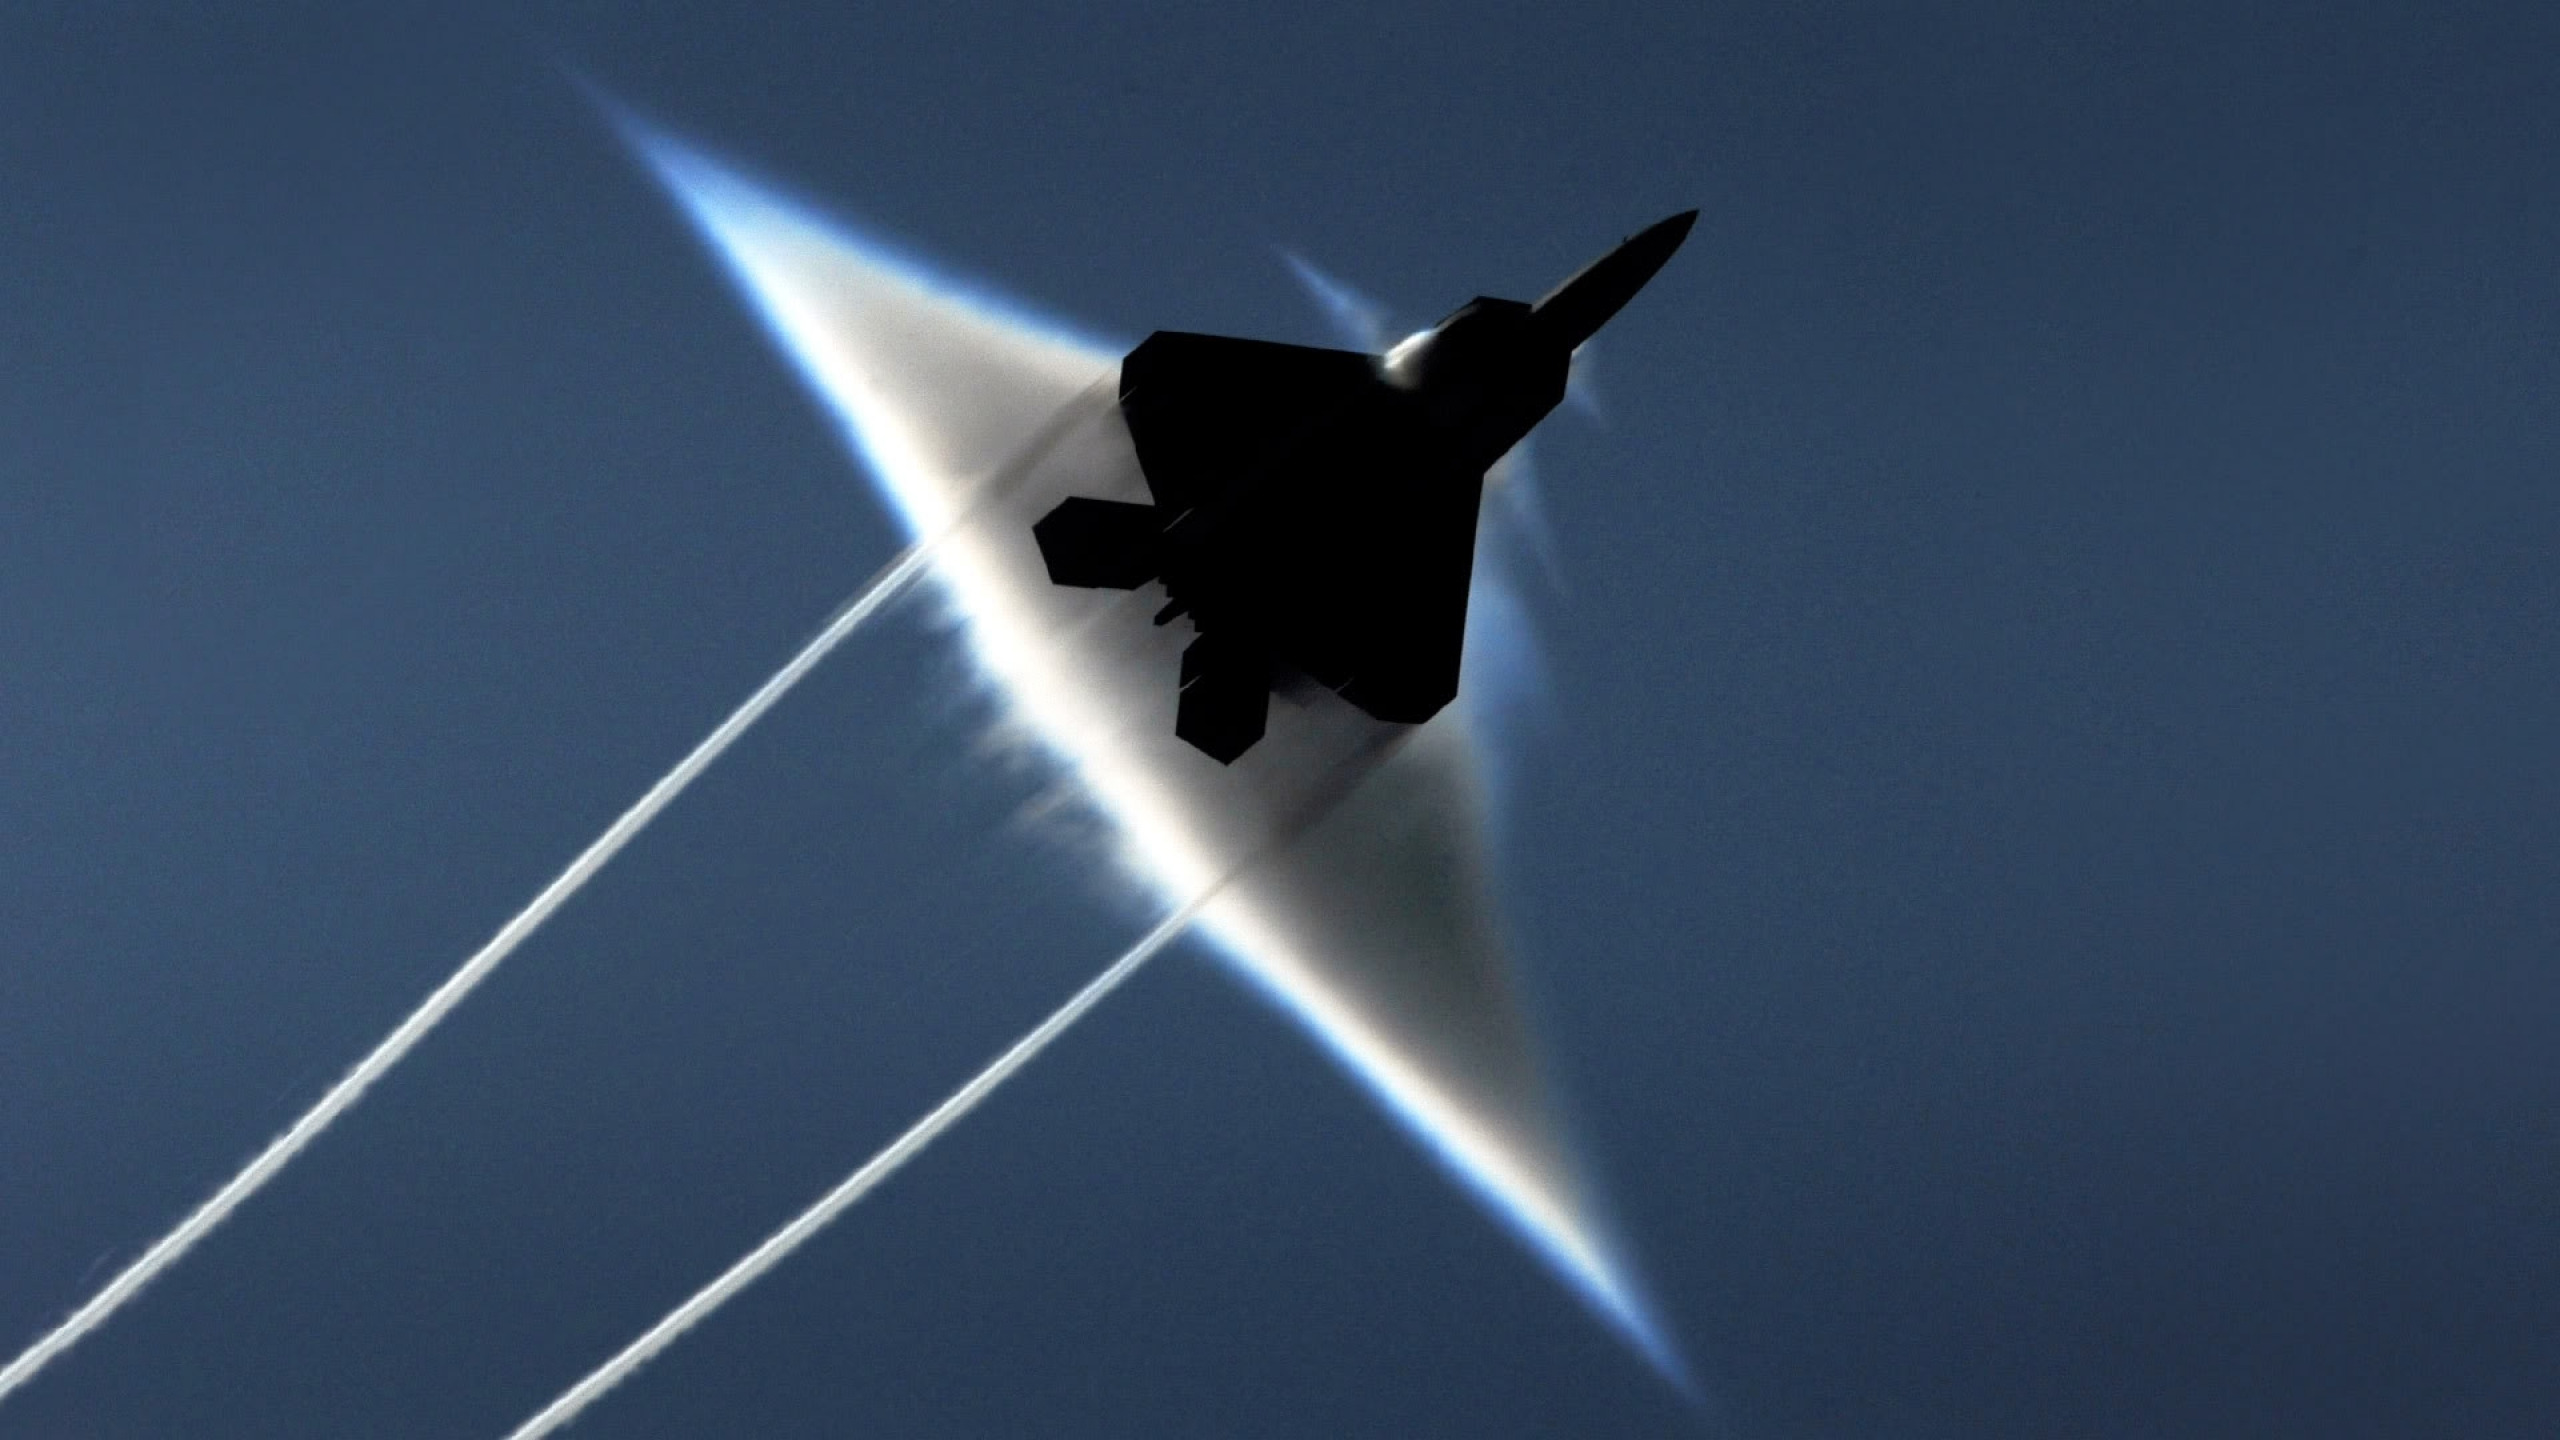 aircrafts-plane-f-raptor-sonic-boom-wallpaper-wp3602306